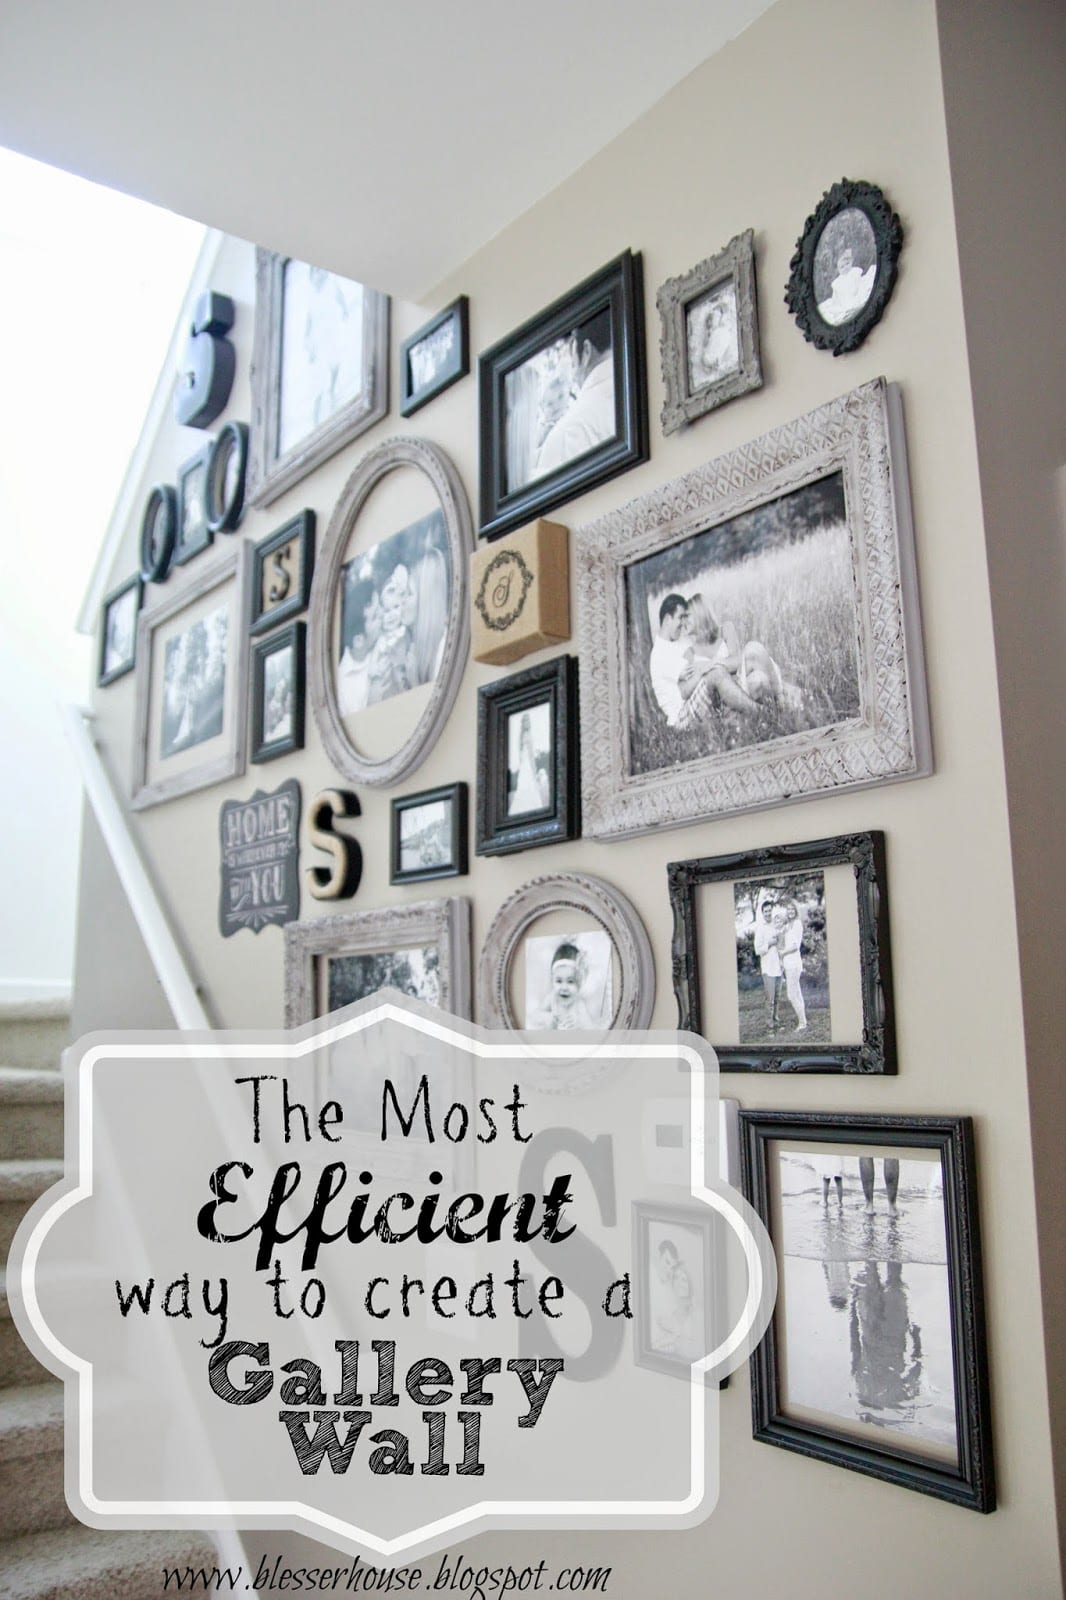 The Most Efficient Way to Create a Gallery Wall - Bless\'er House